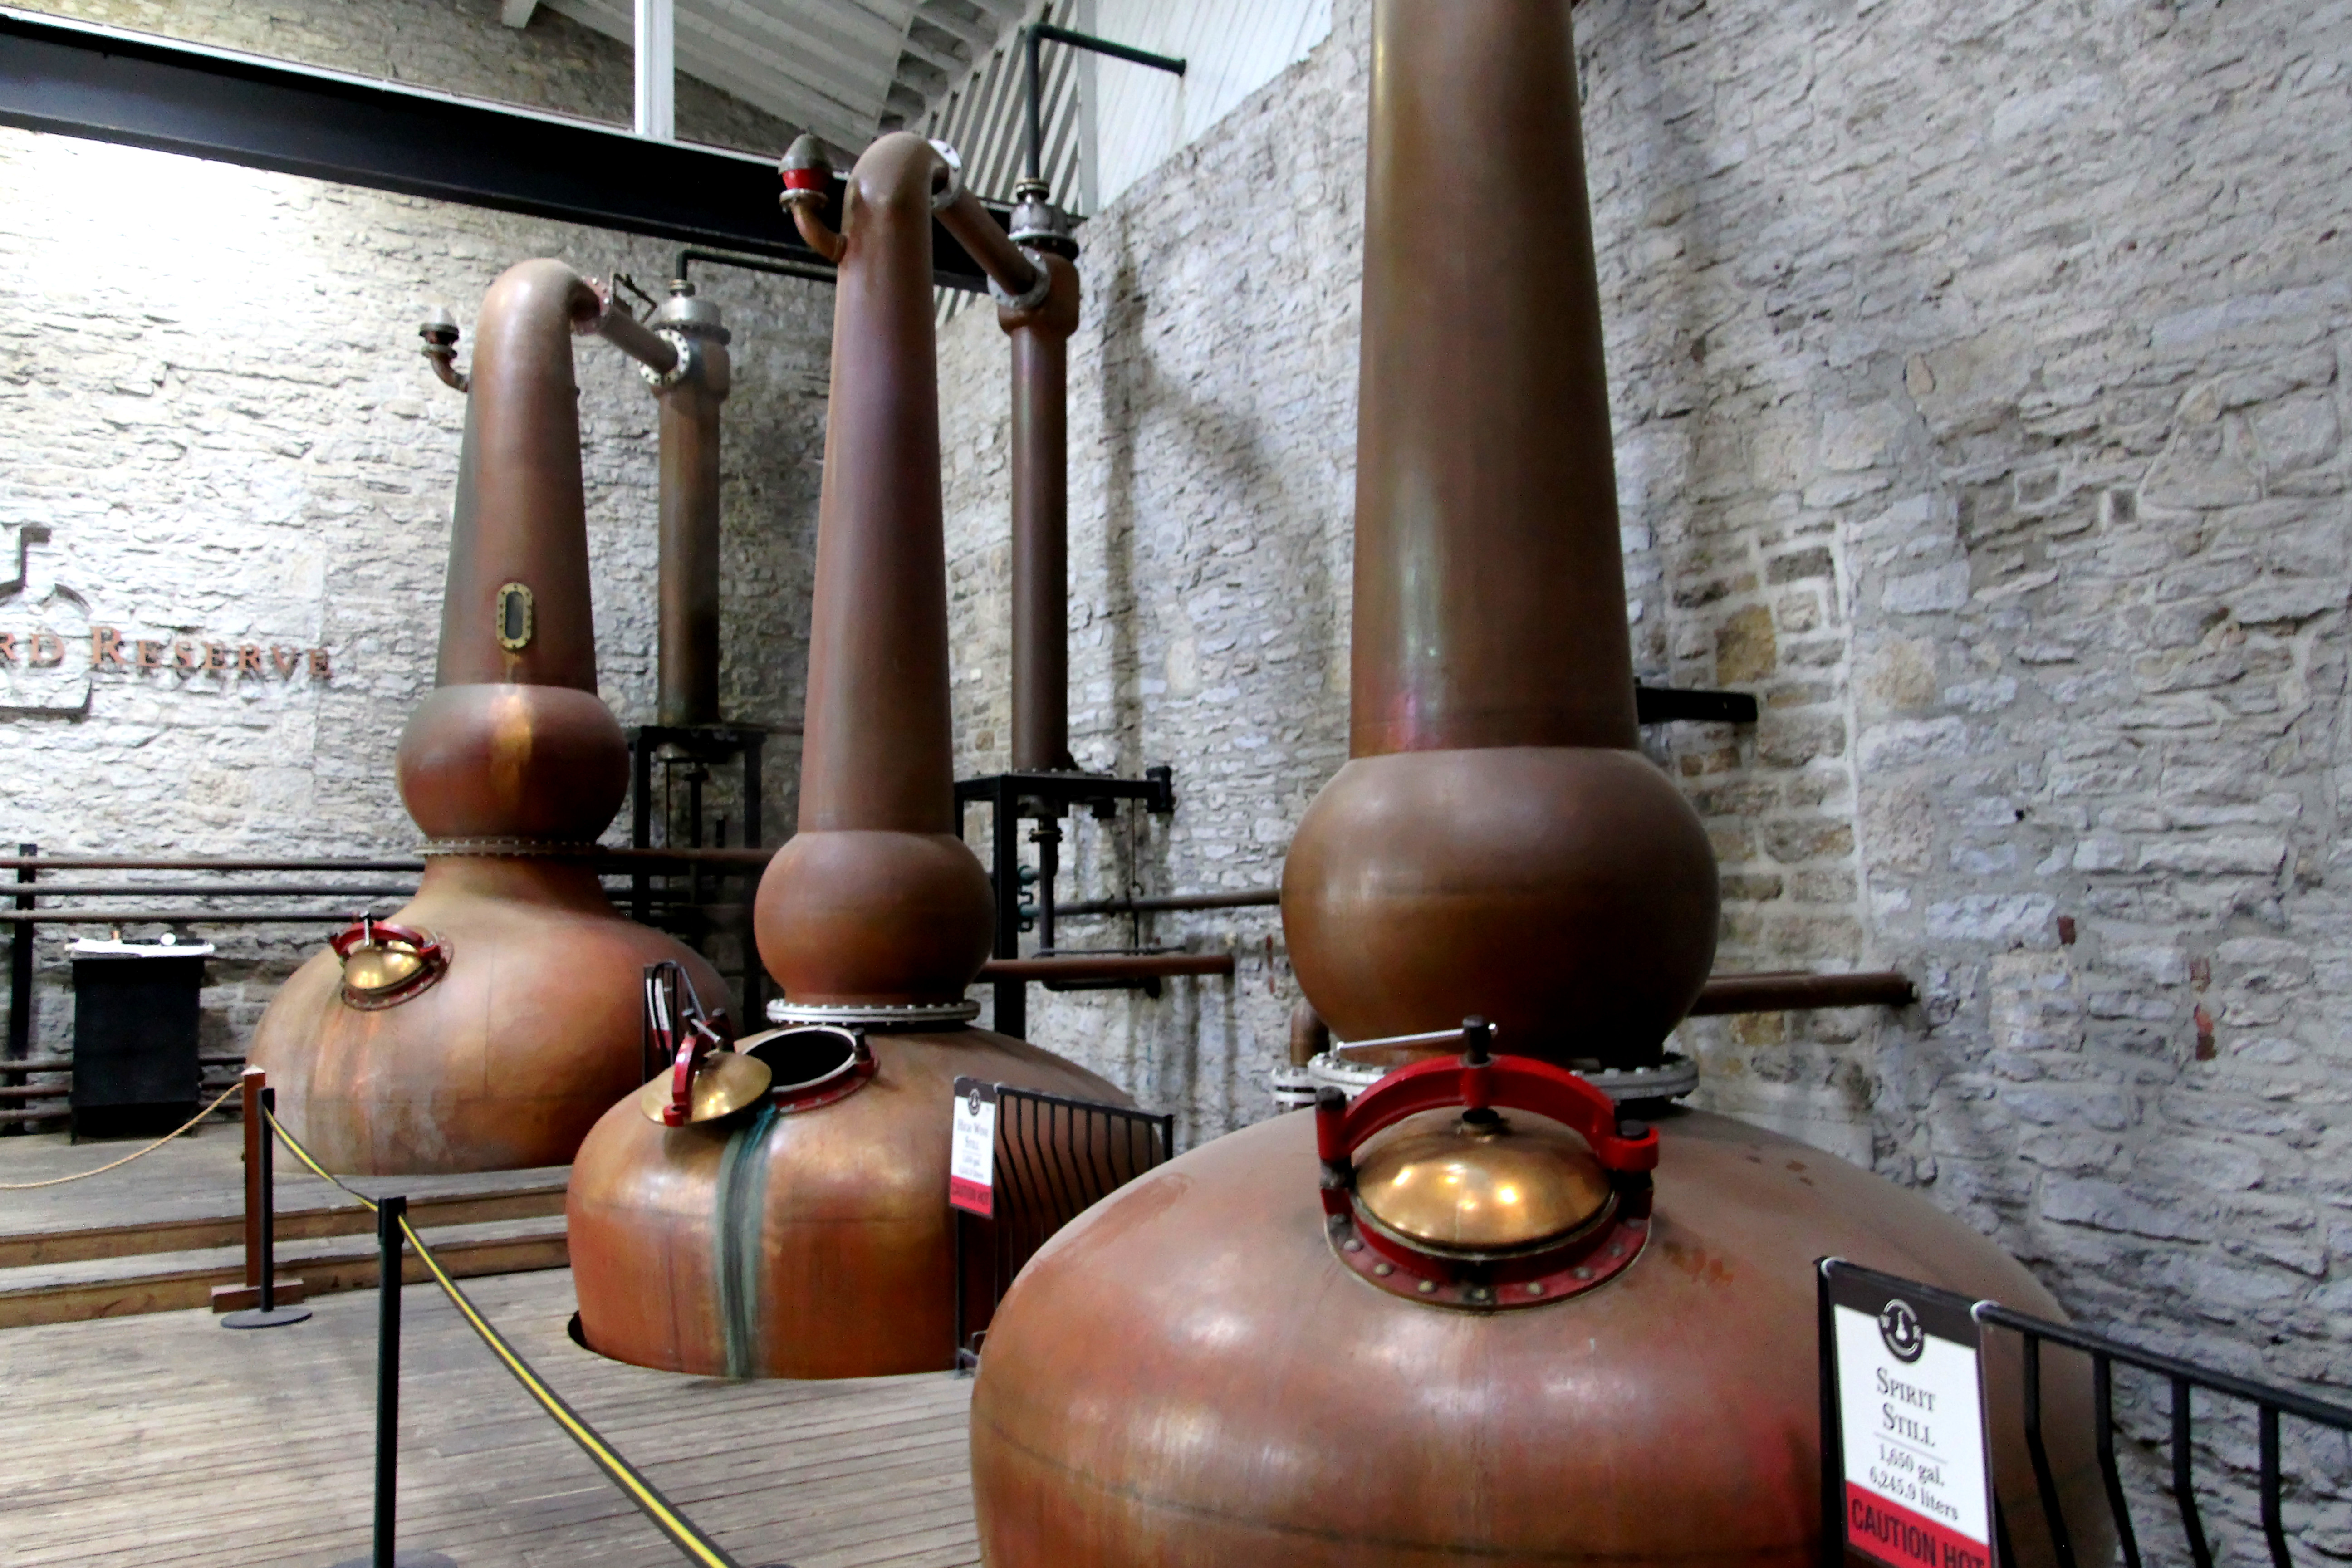 Woodford Reserve pot stills